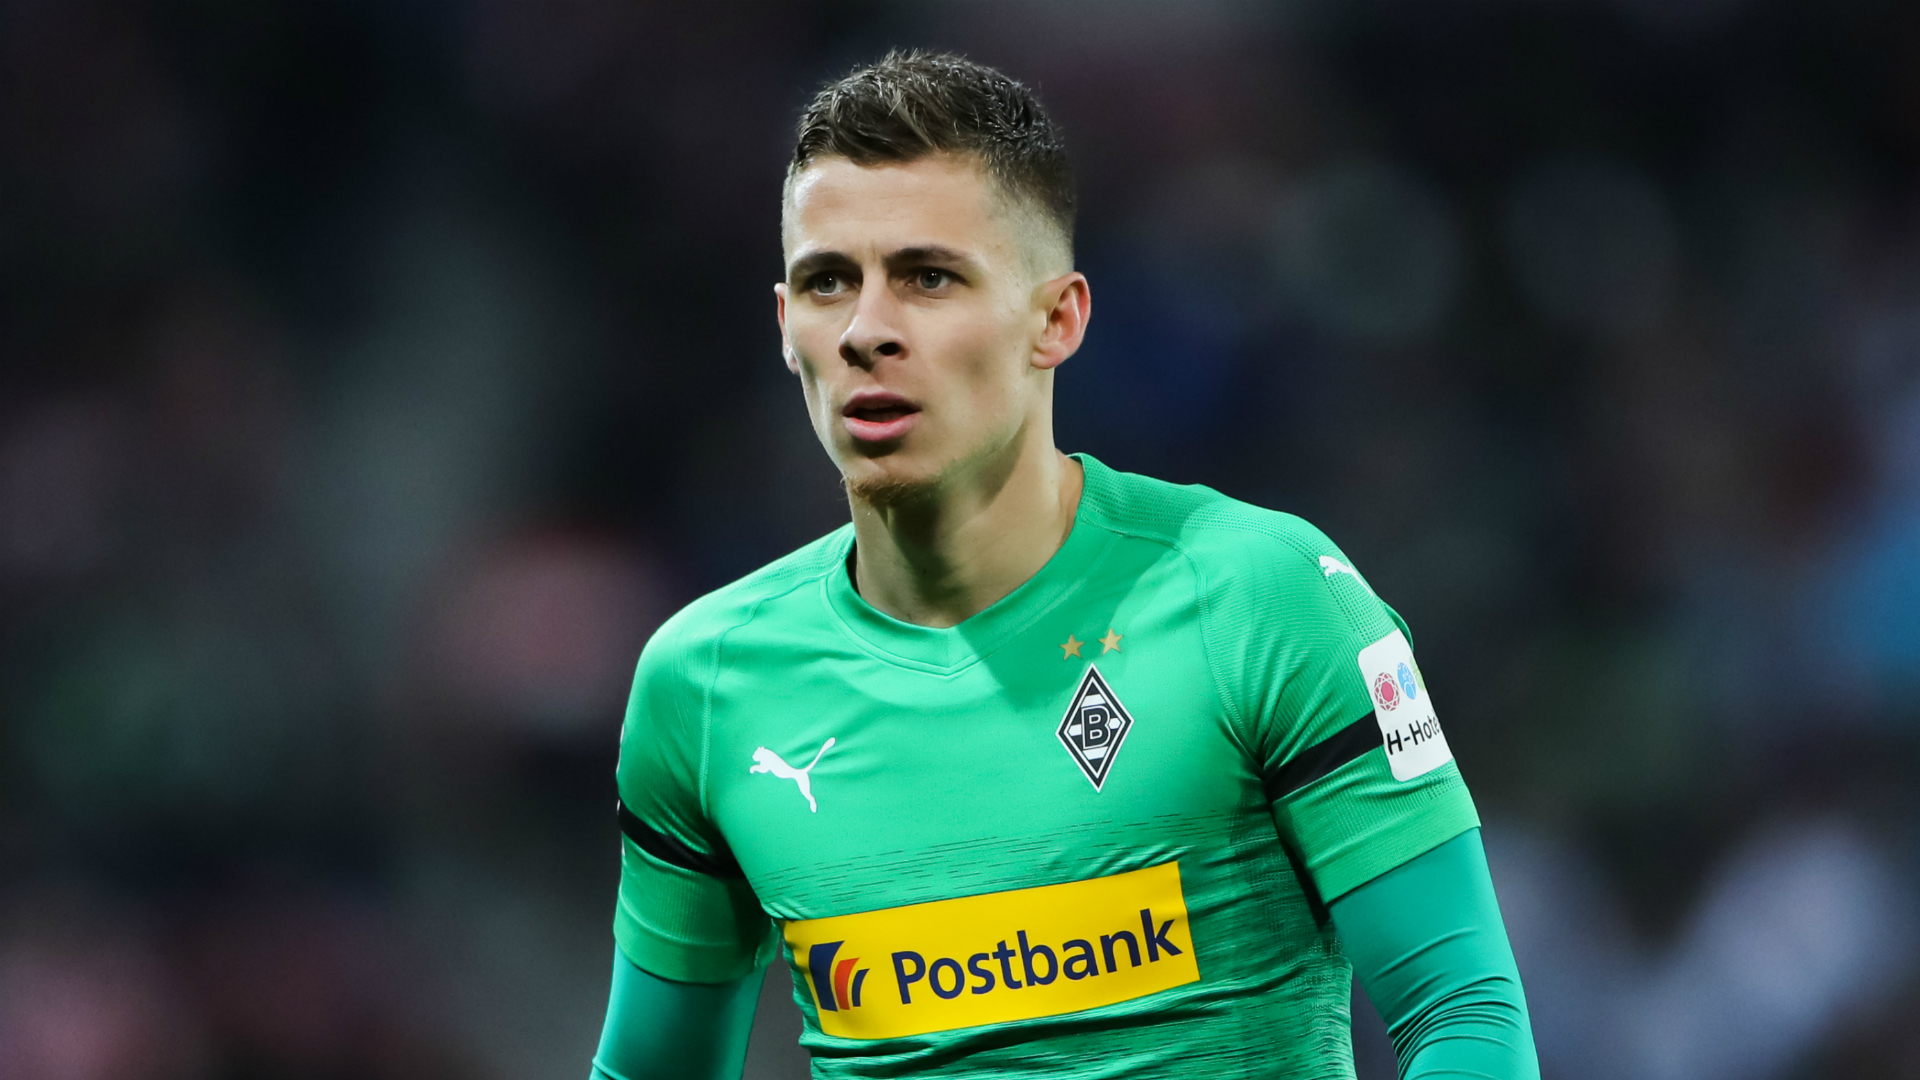 Thorgan Hazard to join Dortmund for 40 million euros